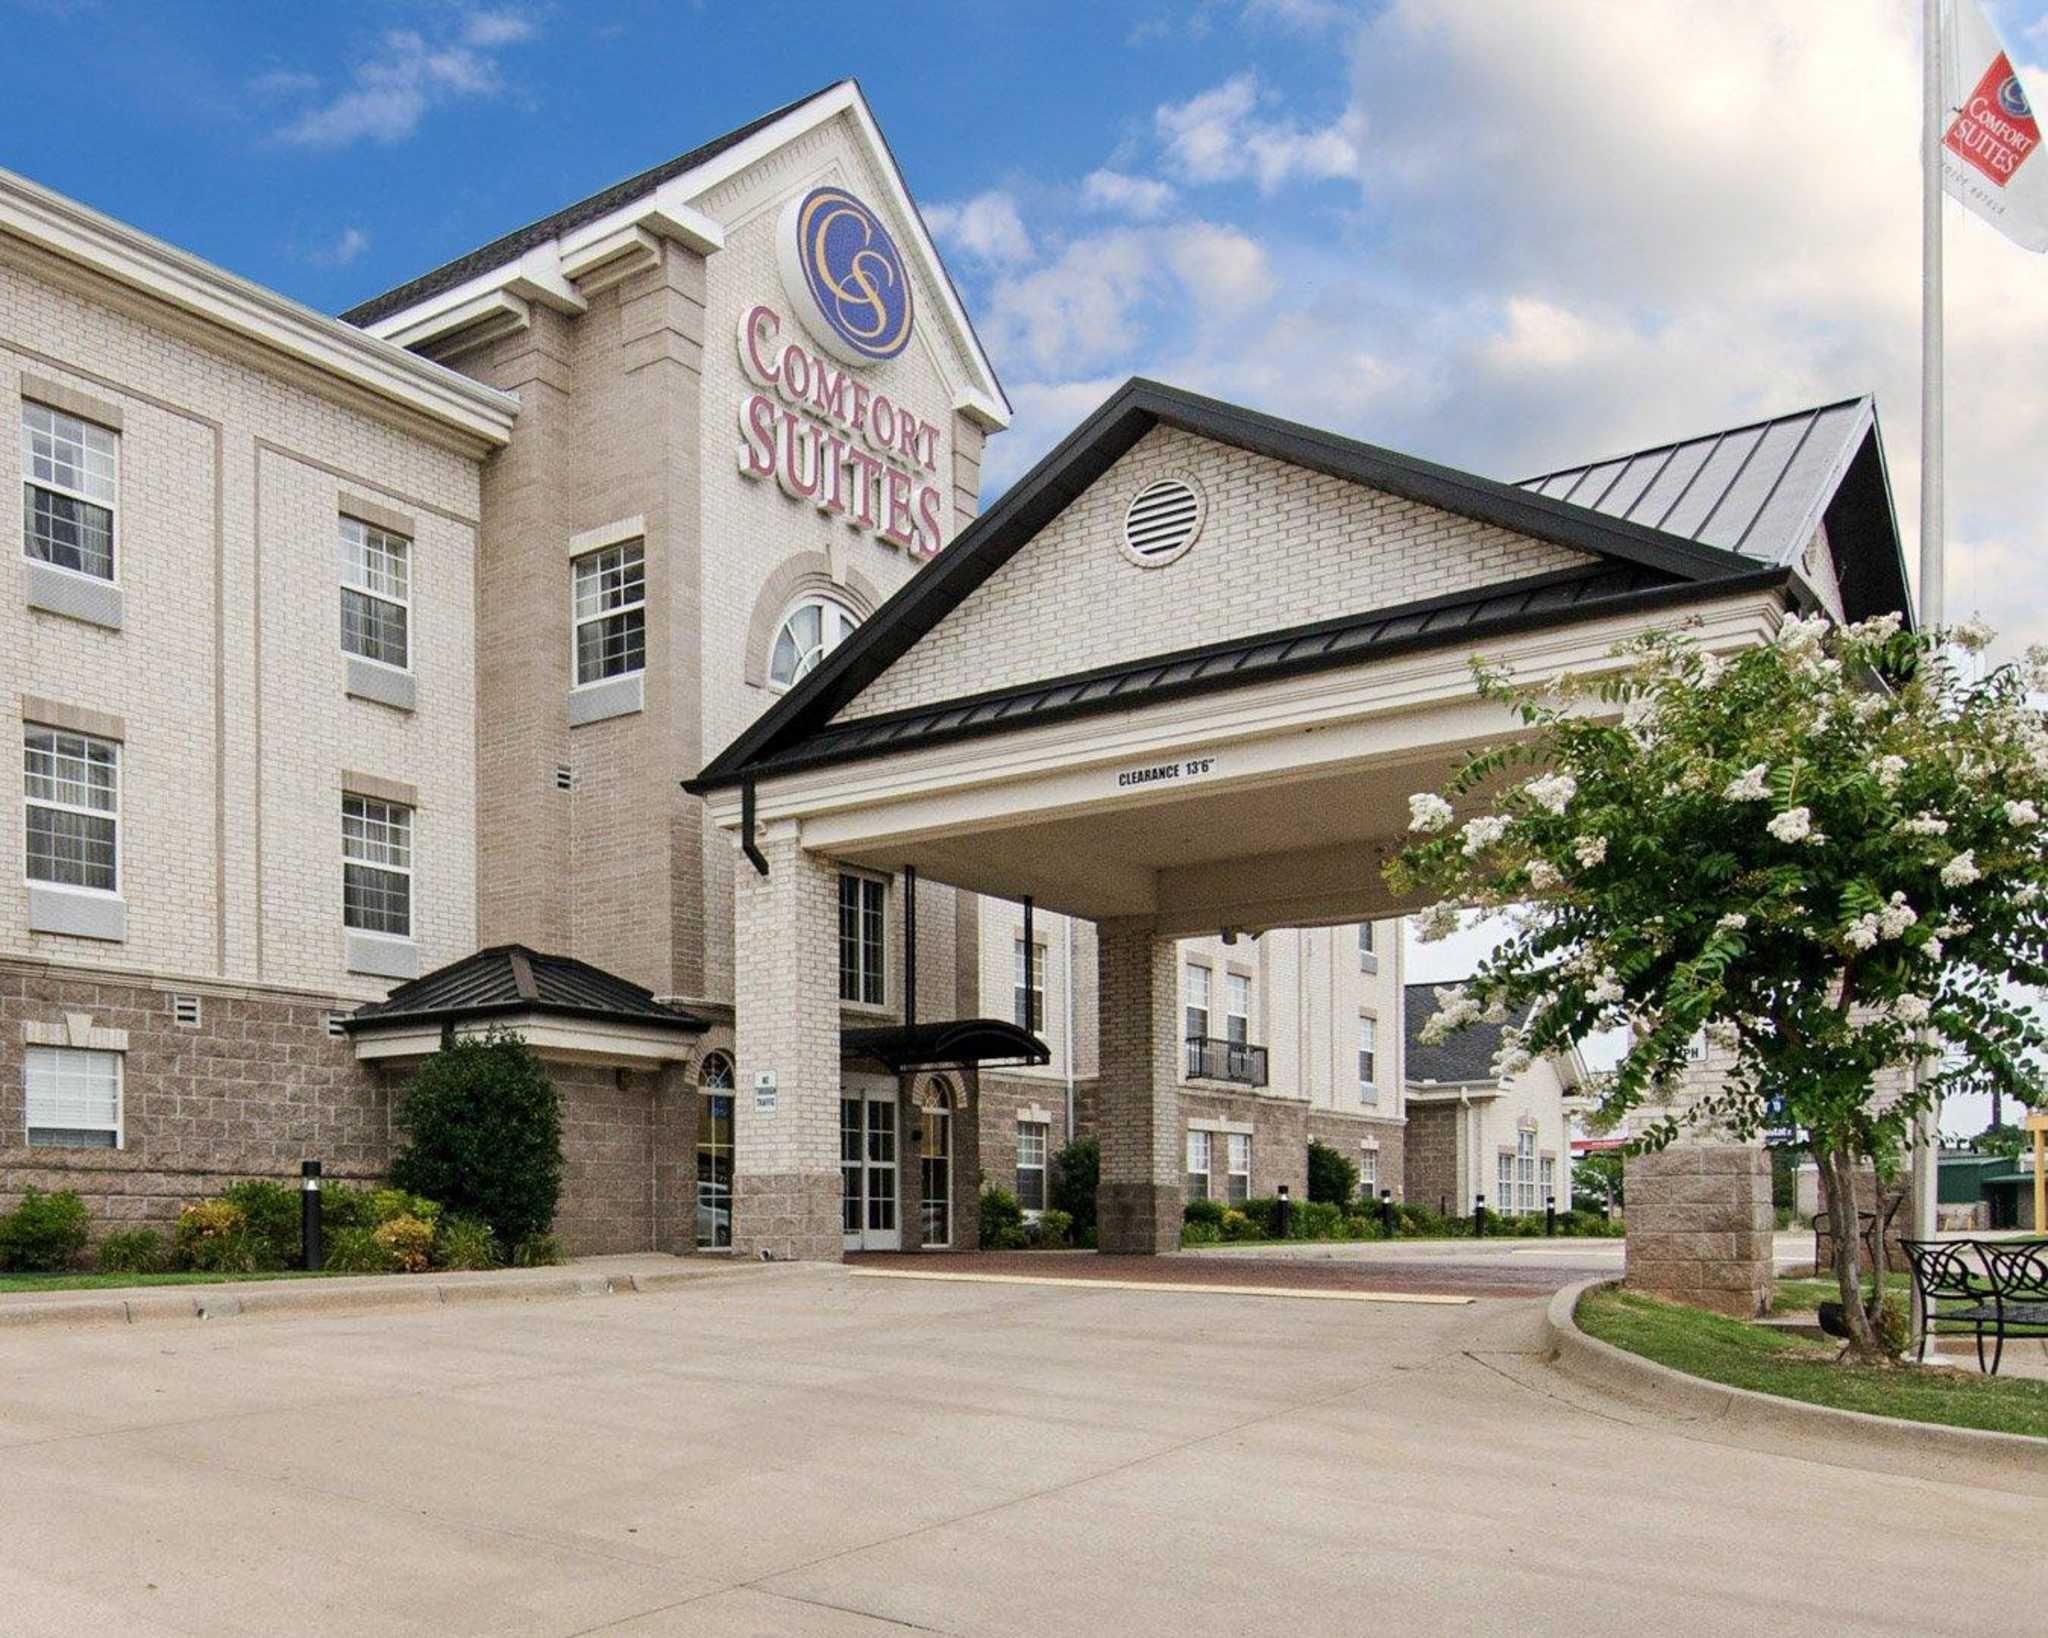 Comfort Suites In Conway Ar 72032 Chamberofcommerce Com